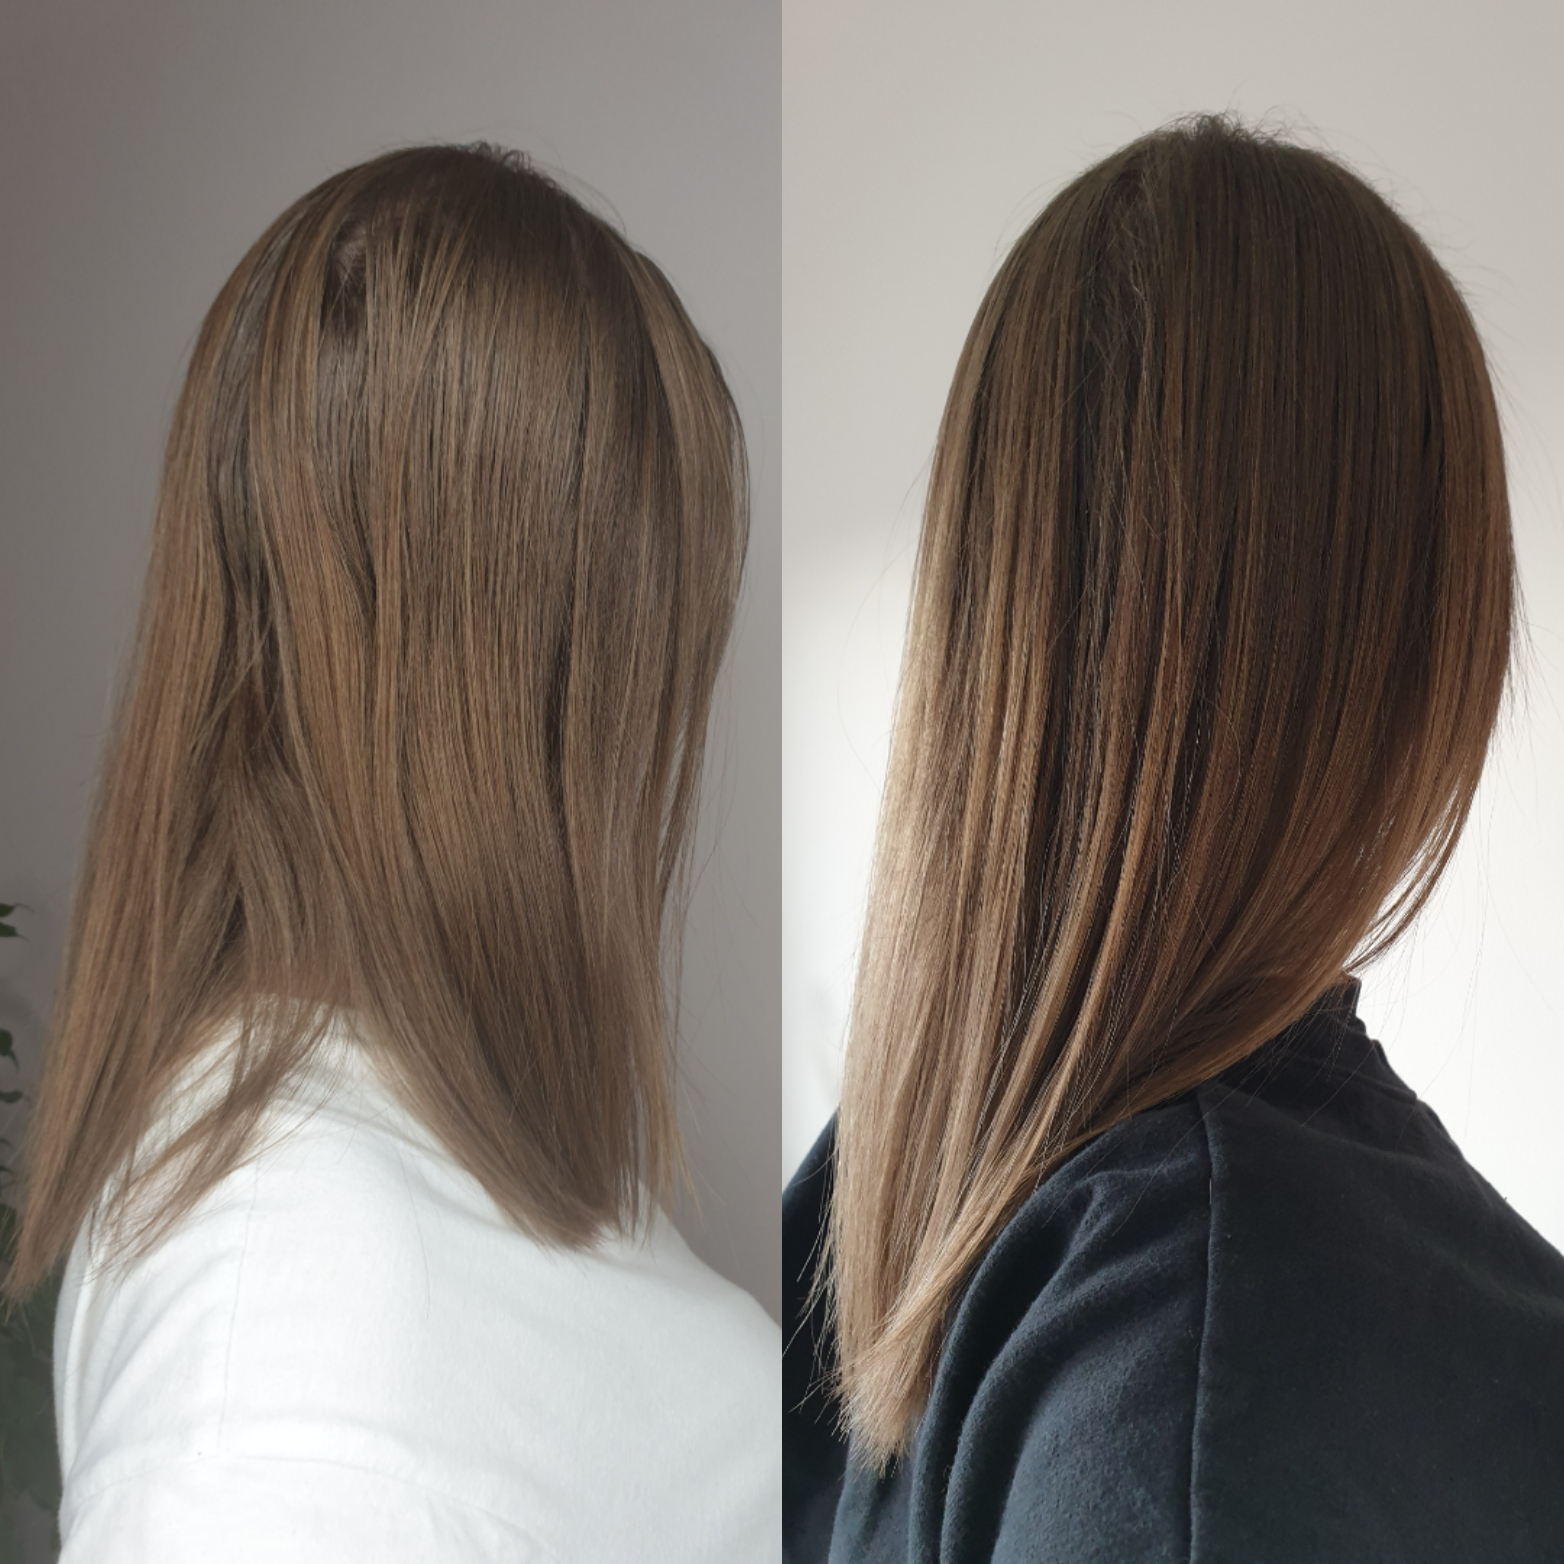 Lydia Hair Growth Supplement Before and After